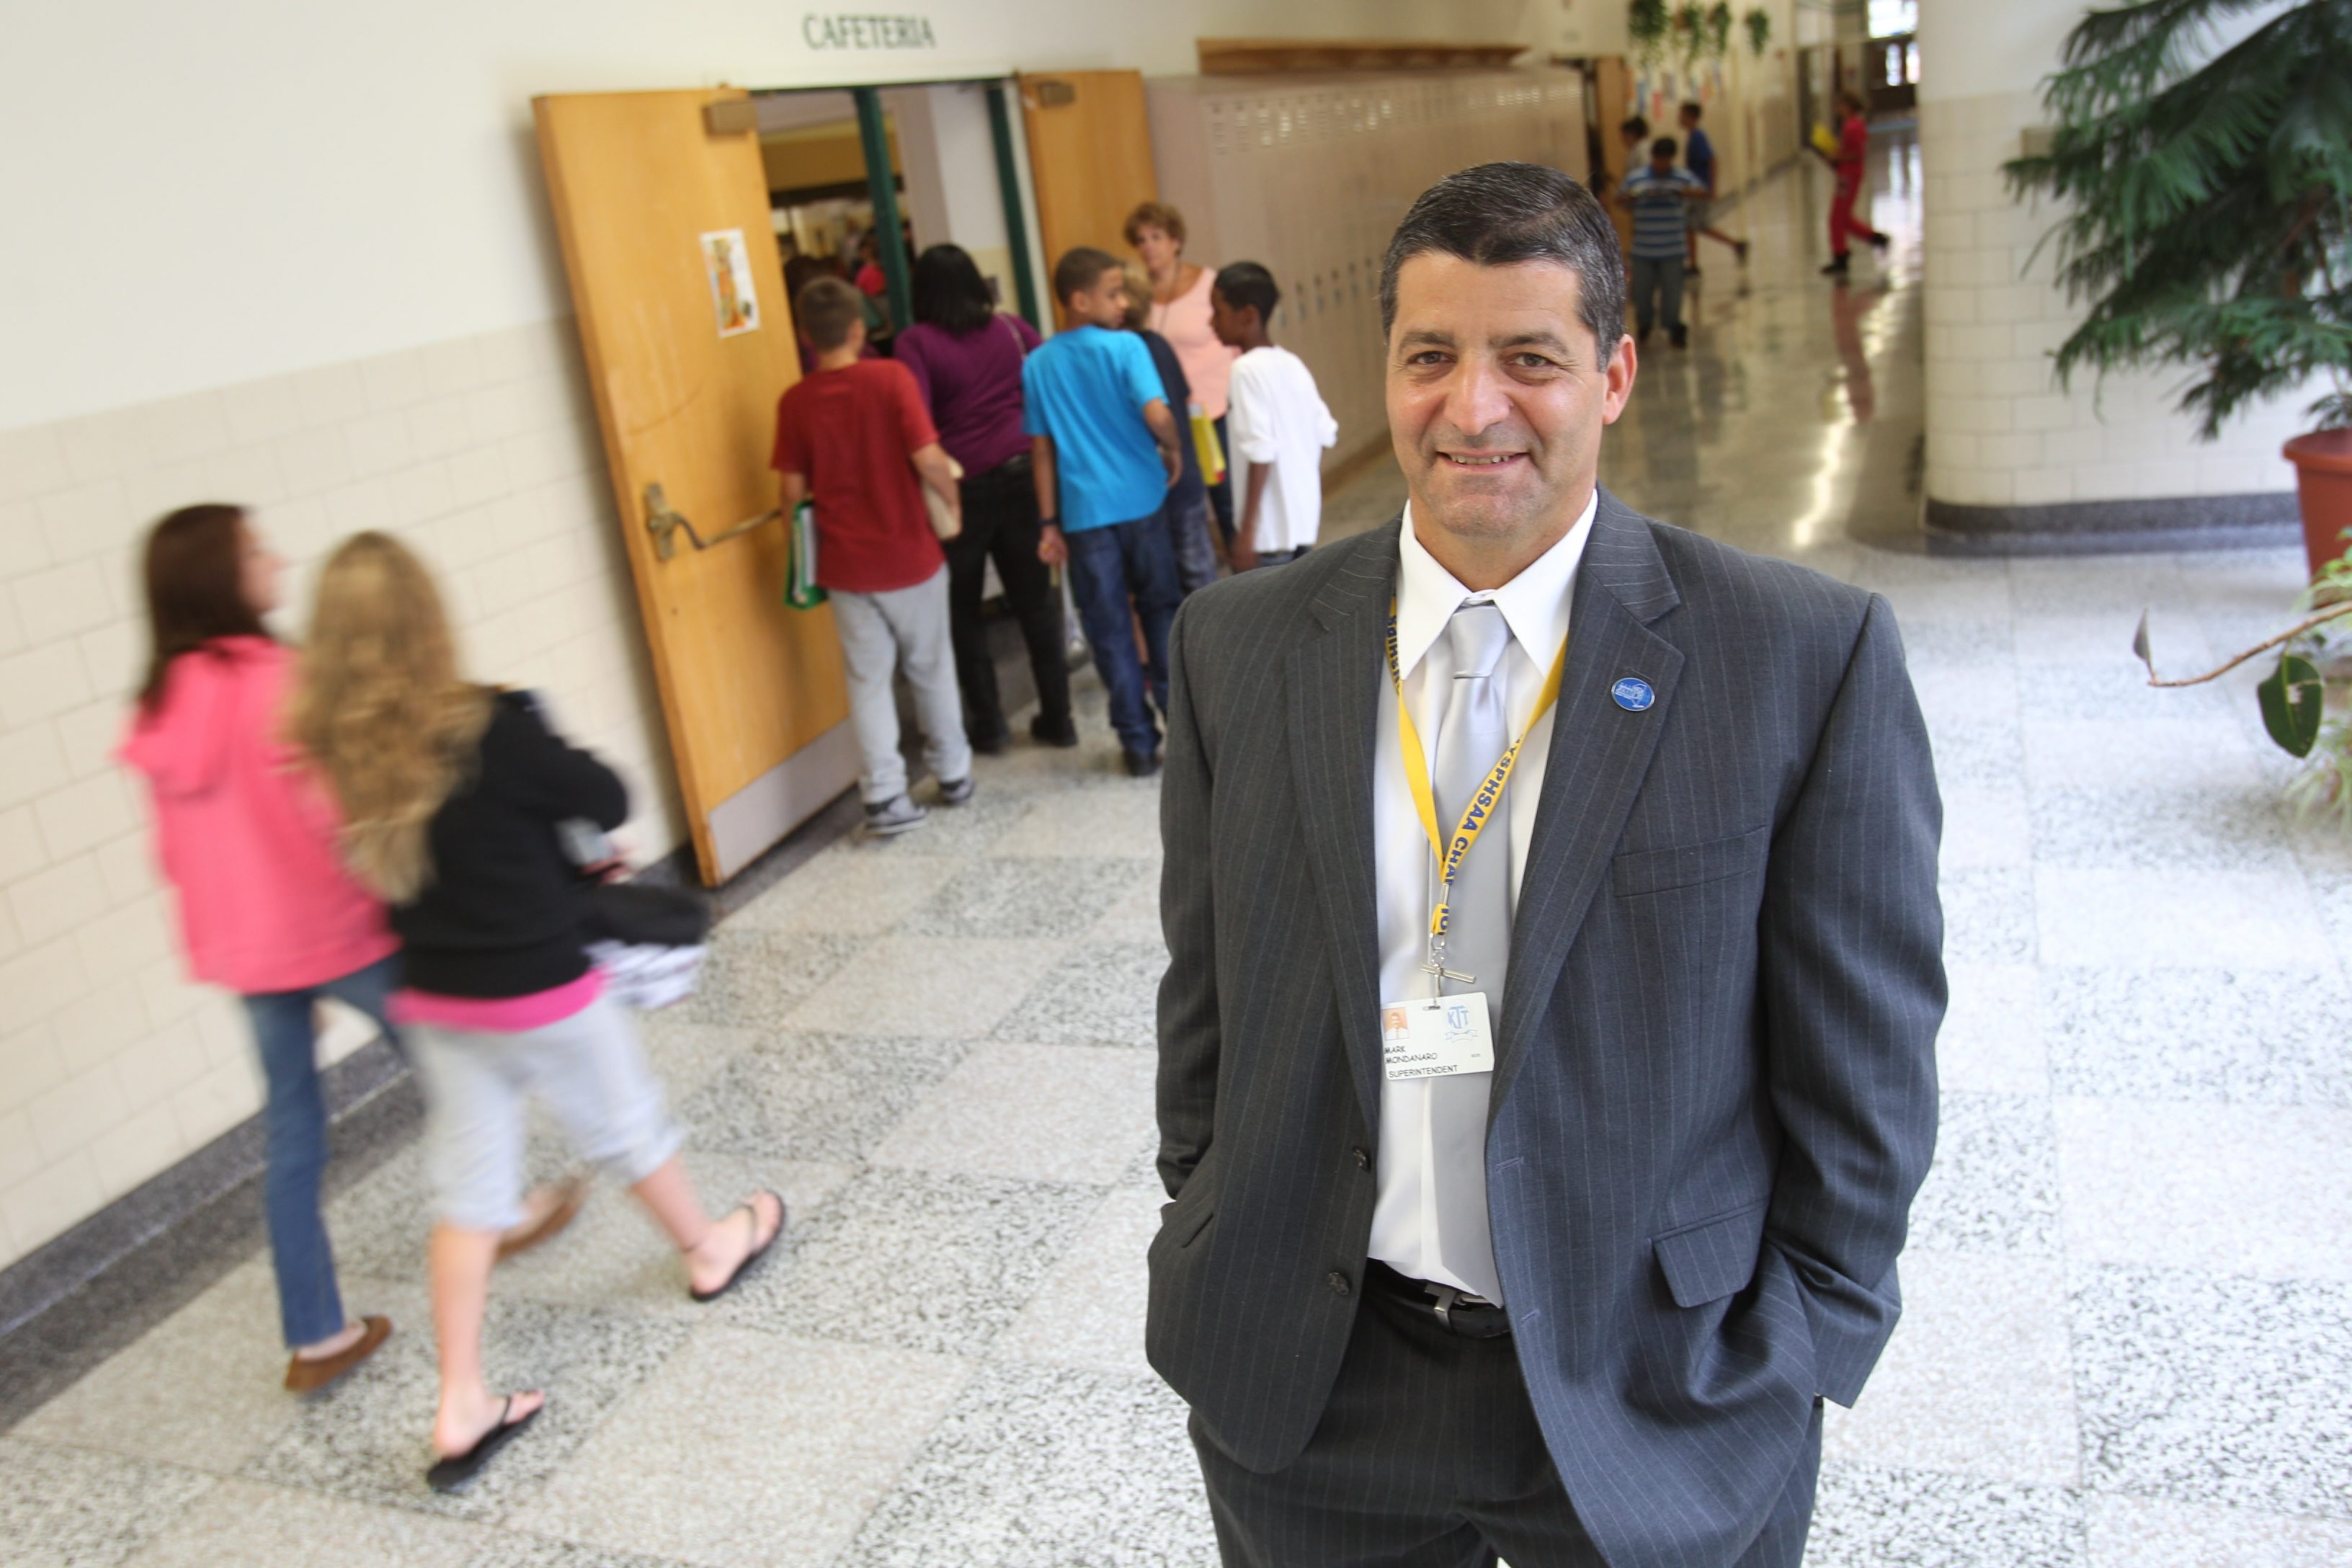 Sharon Cantillon/Buffalo News  'The district couldn't build schools fast enough ... for many, many decades,' says Ken-Ton Superintendent Mark Mondanaro, who faces a different scenario now.